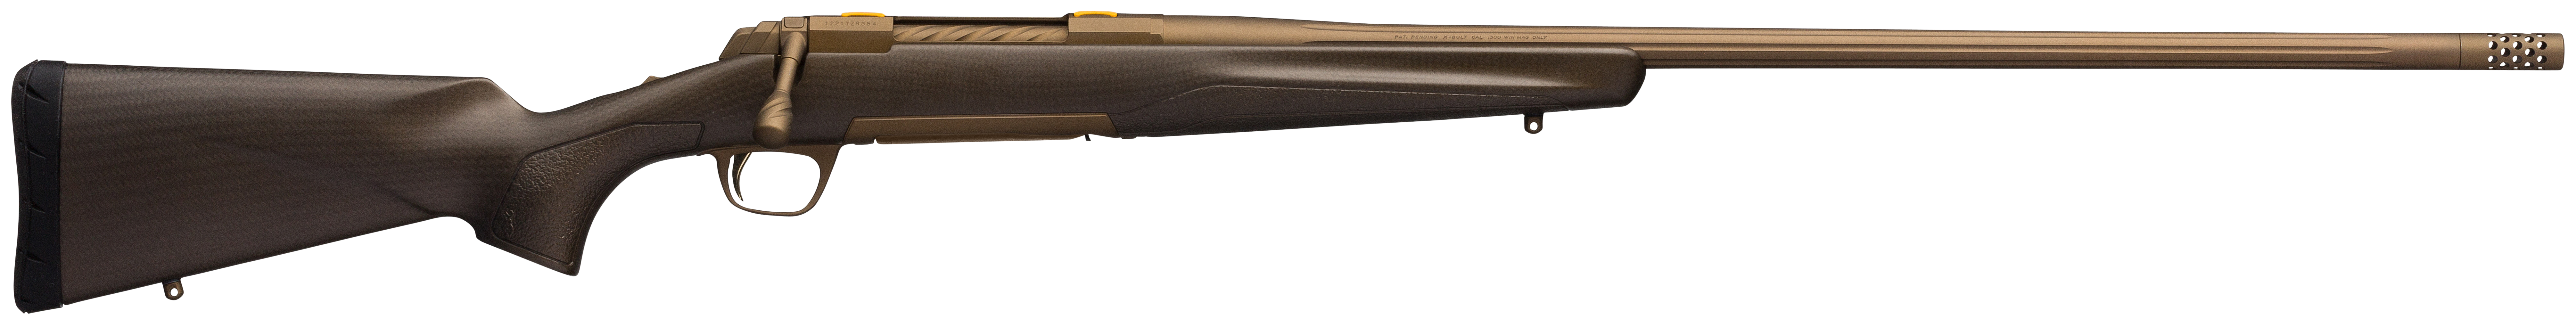 Browning X-Bolt Pro Long Range 6.5 Creedmoor 26